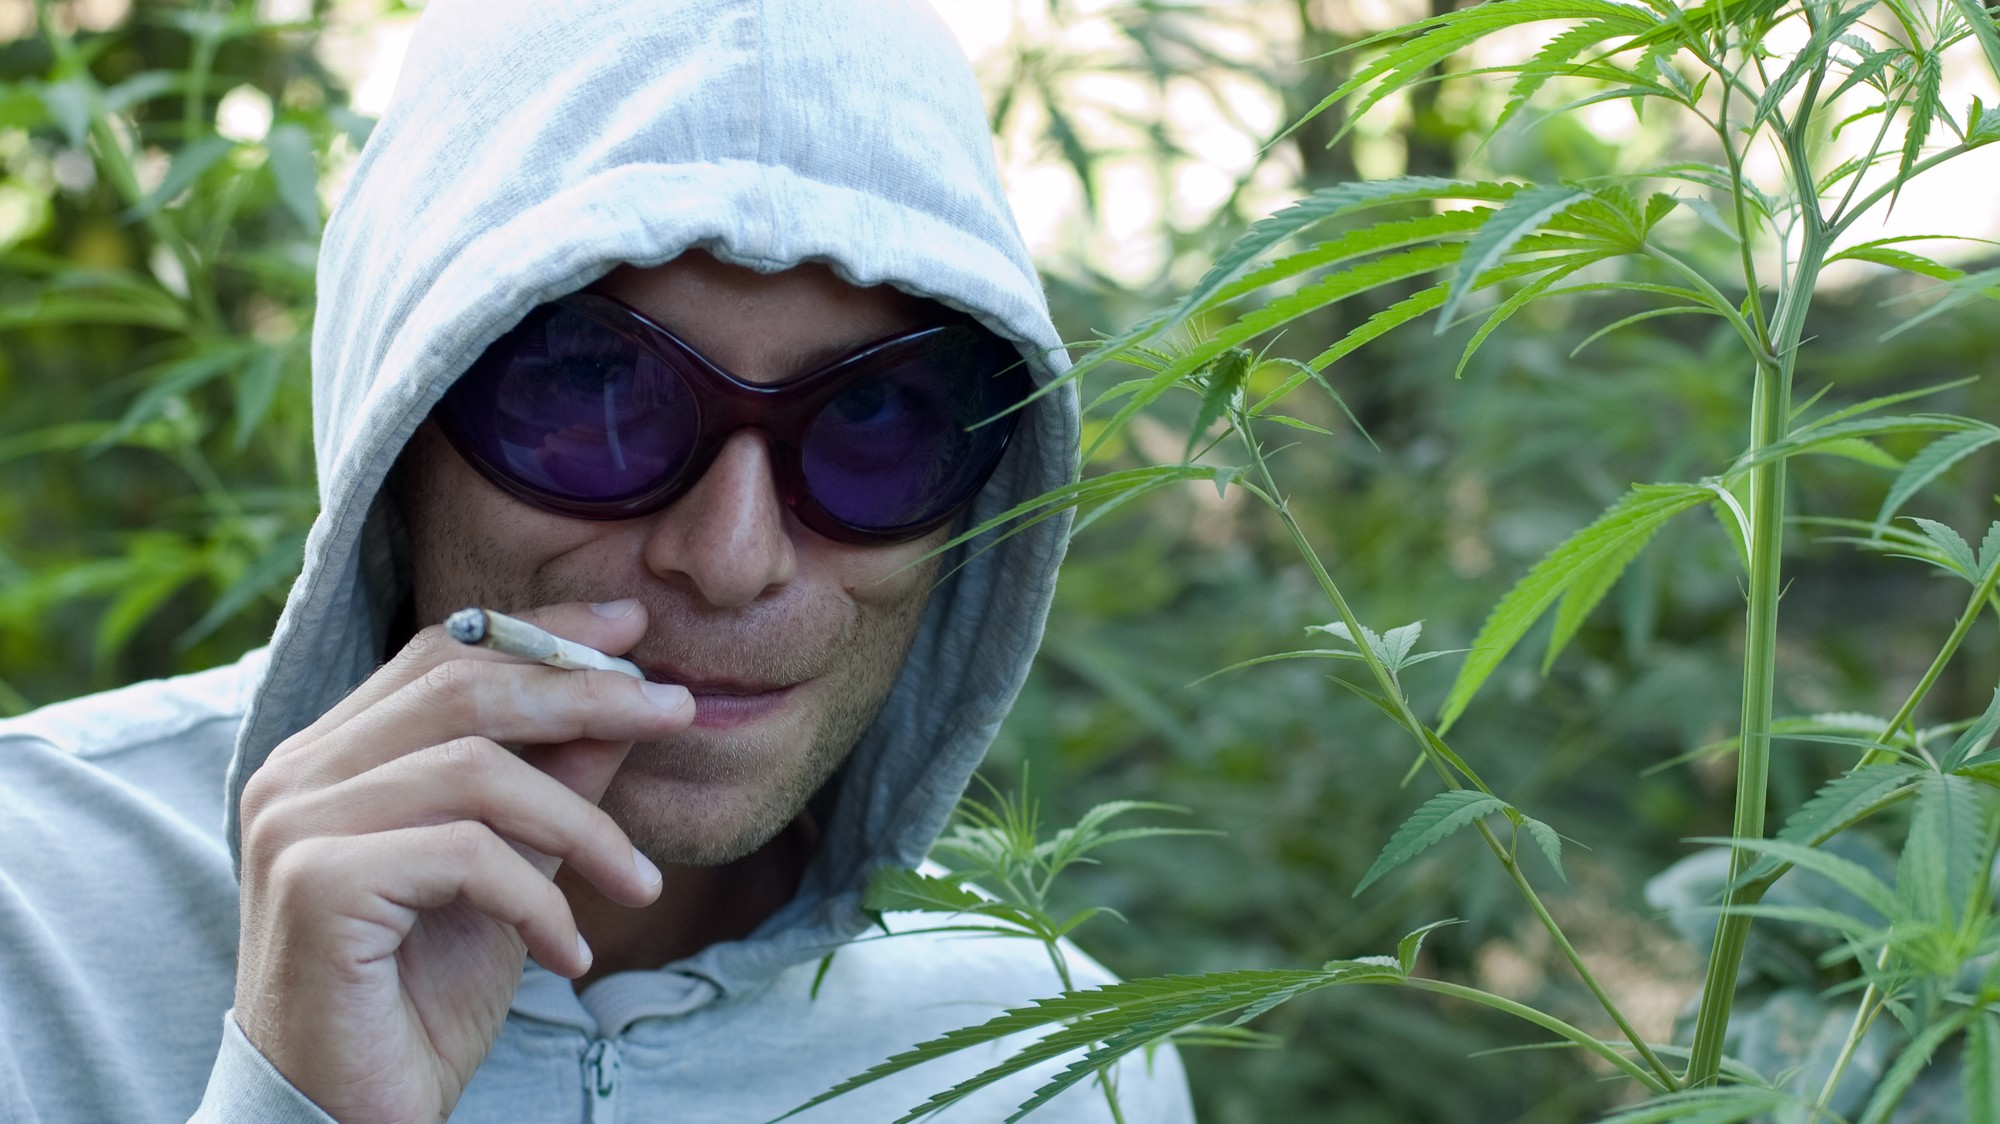 Ranking the Synonyms for Weed From Best to Worst - VICE